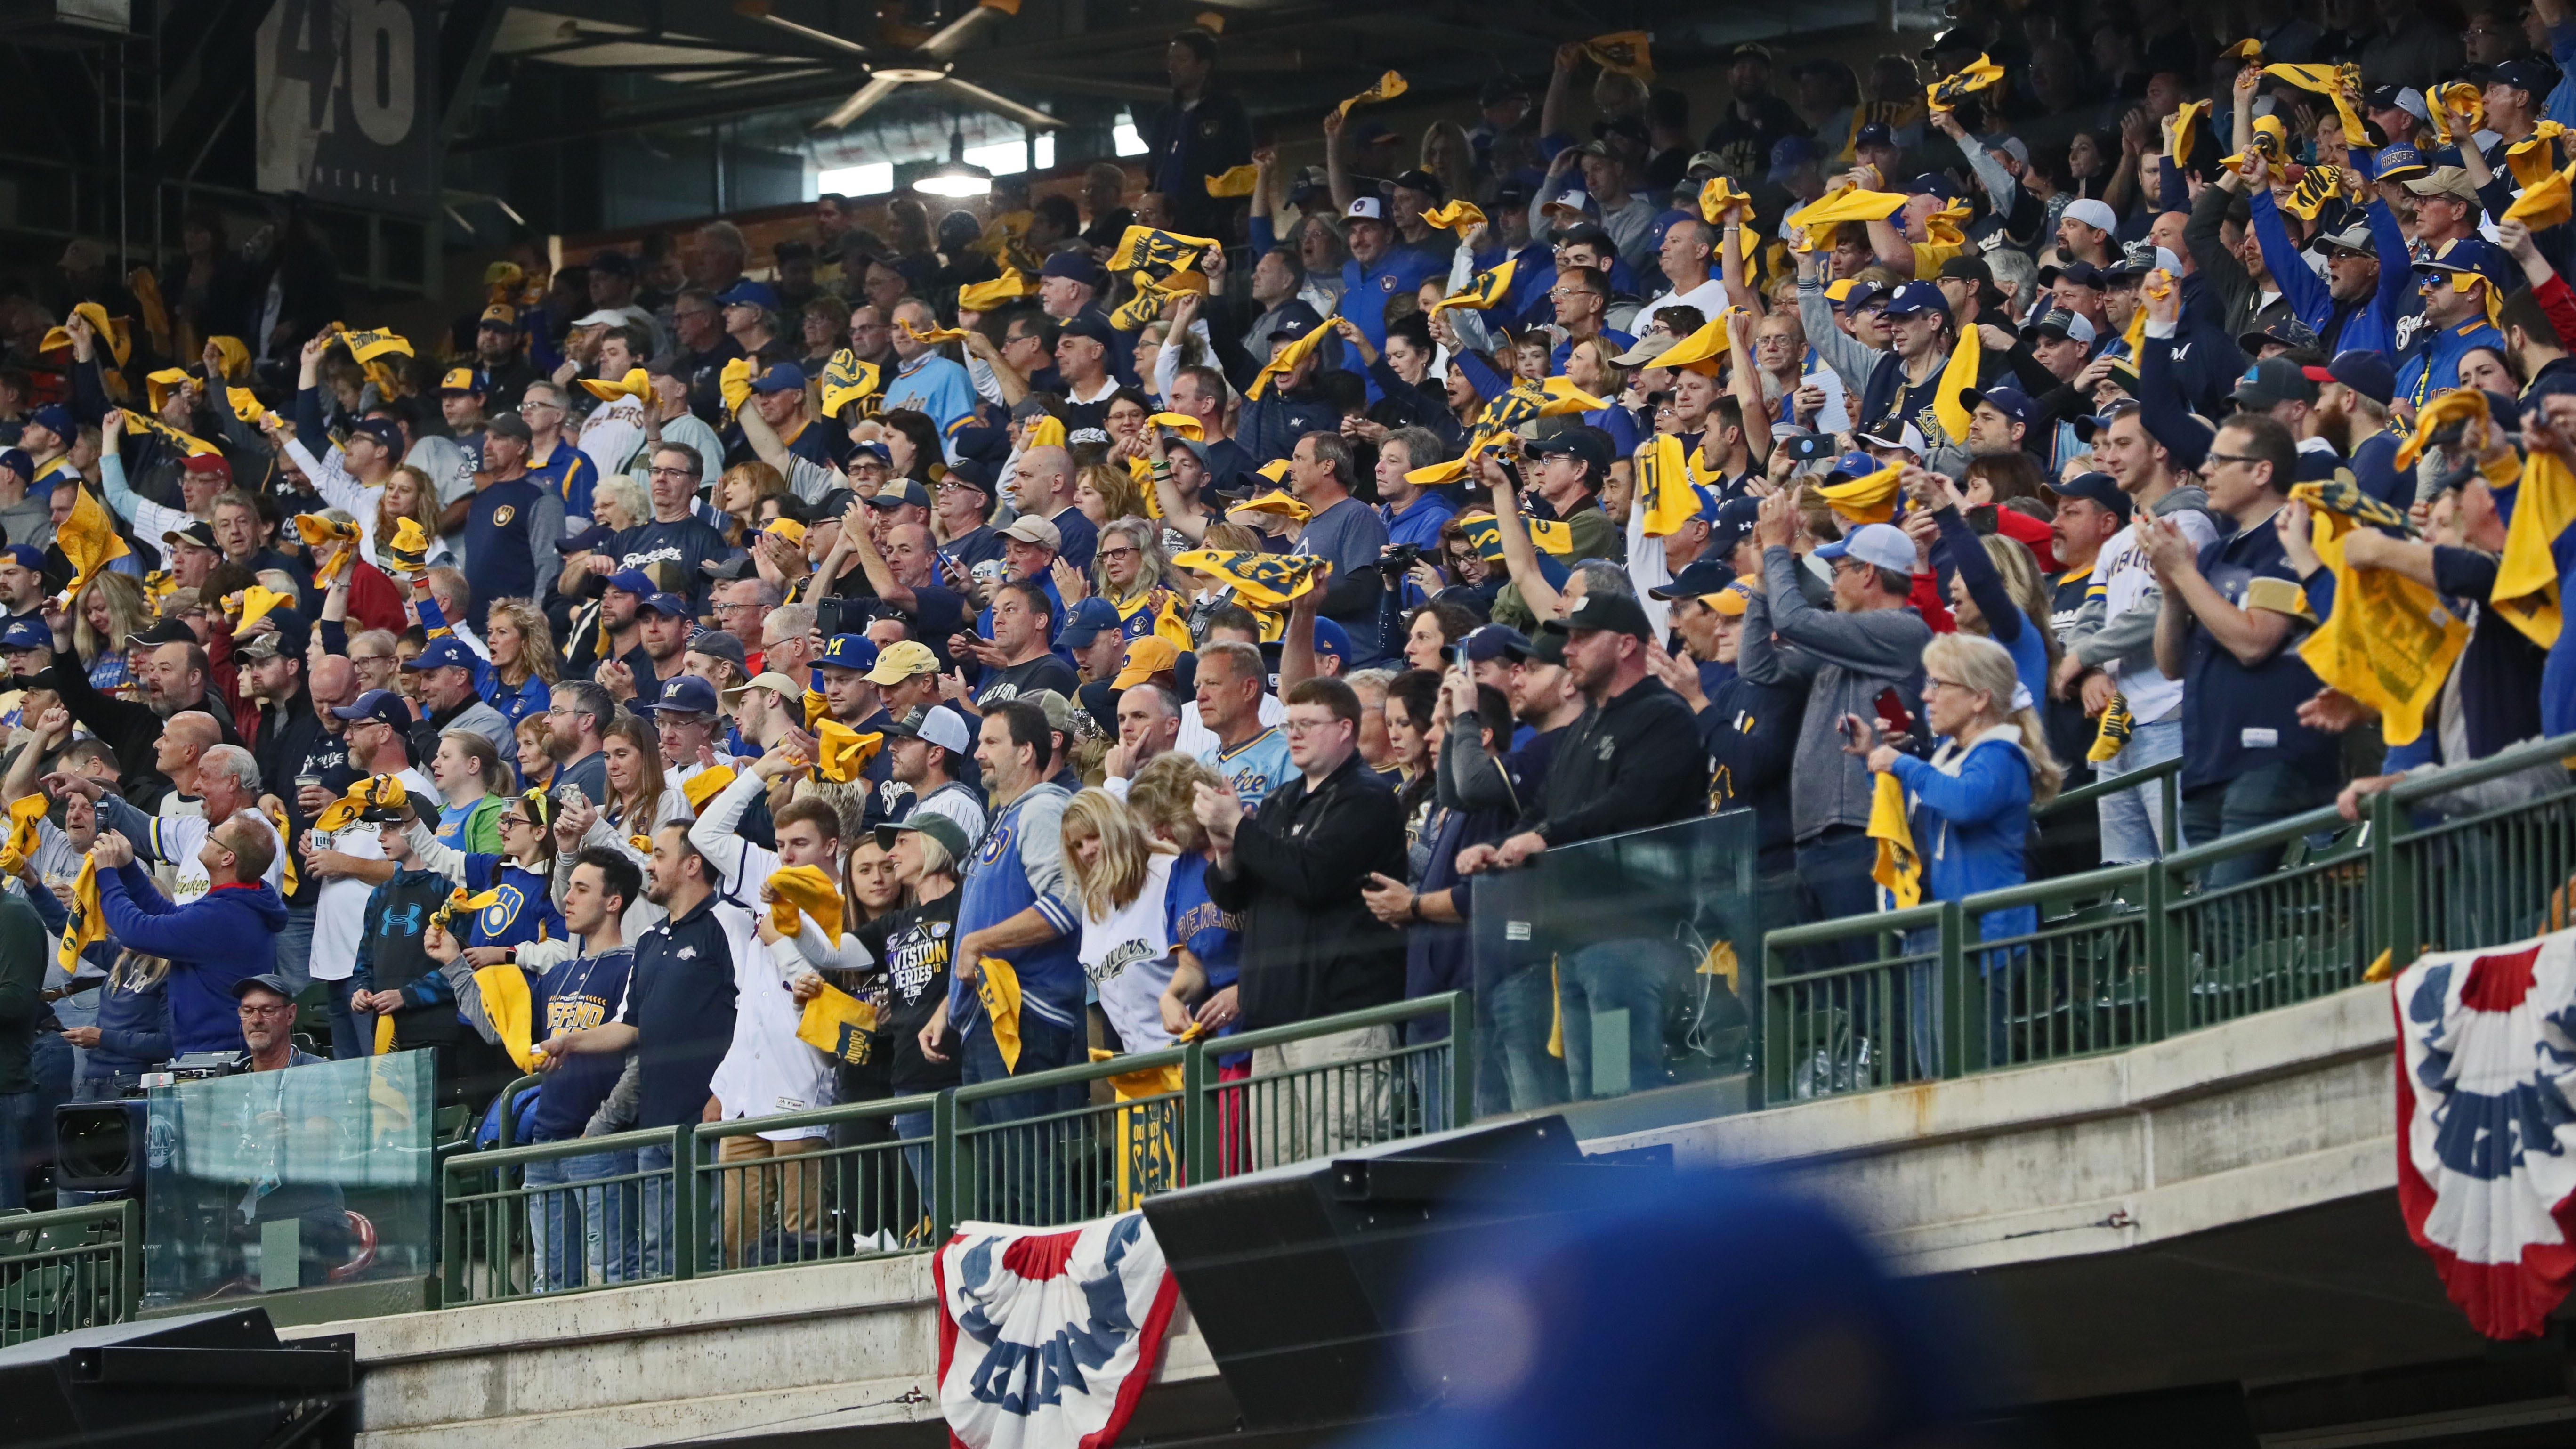 Fans wave their souvenir towels to cheer on the Brewers.